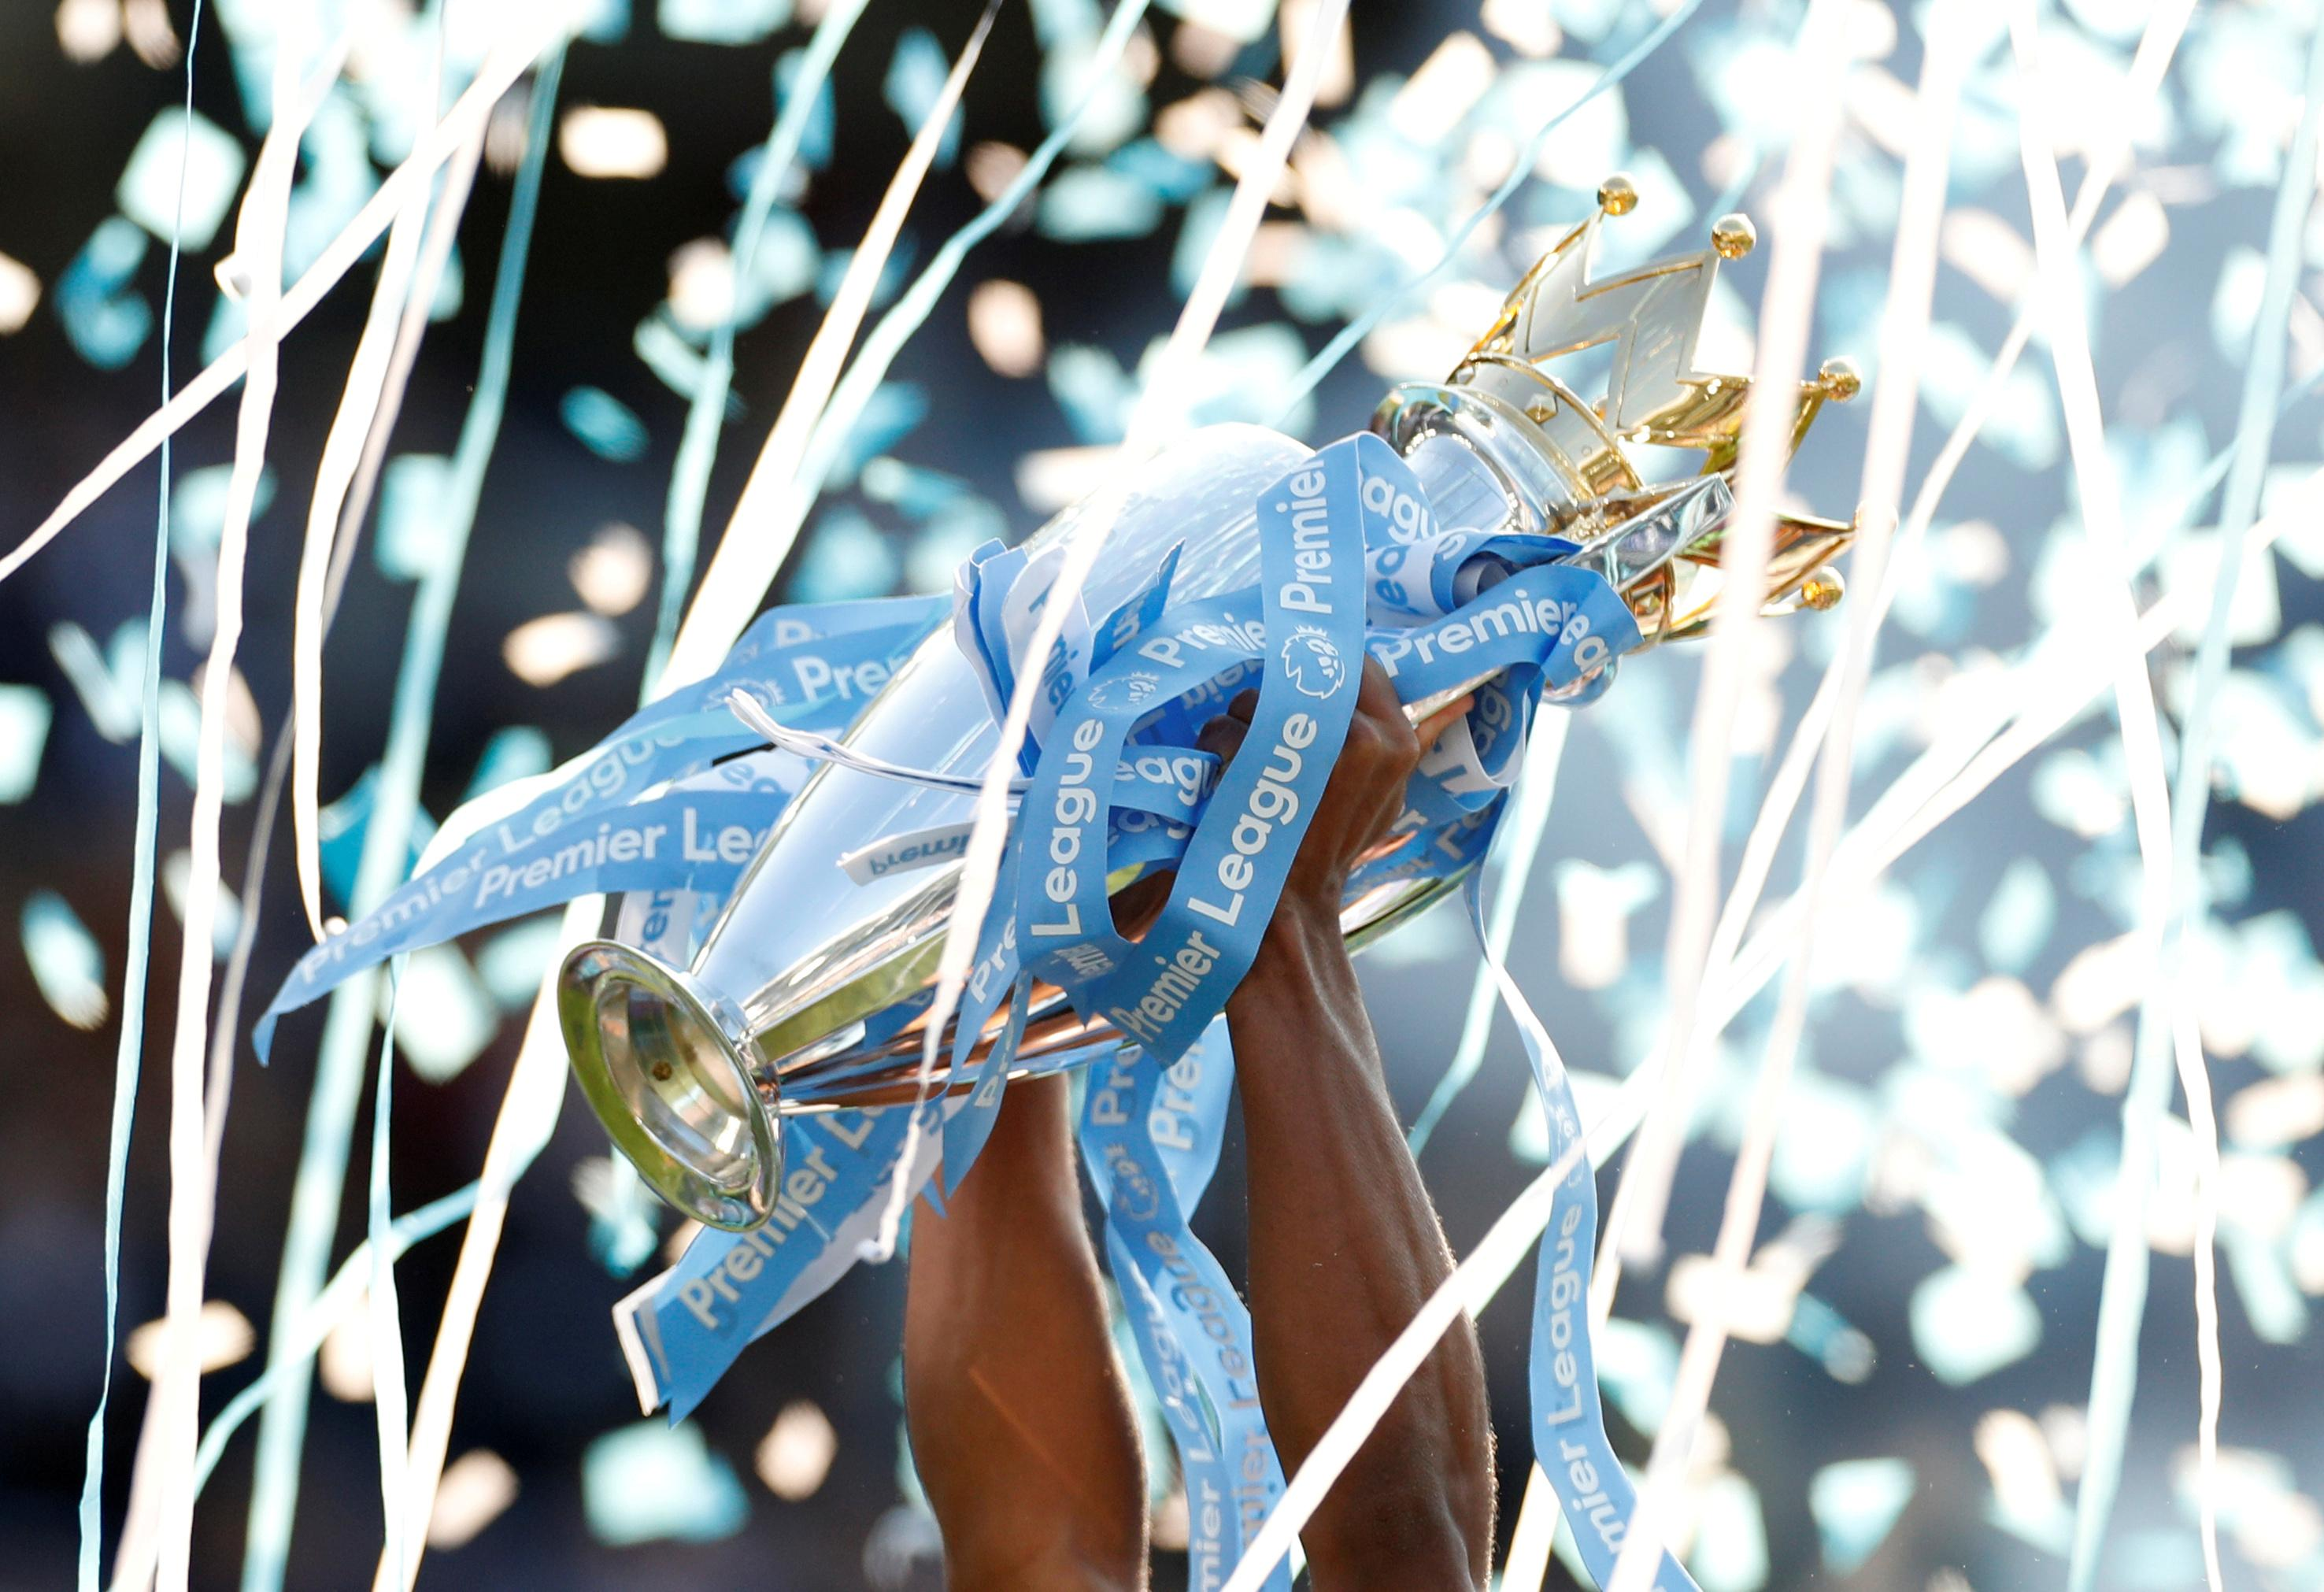 Premier League confirms Masters as new chief executive